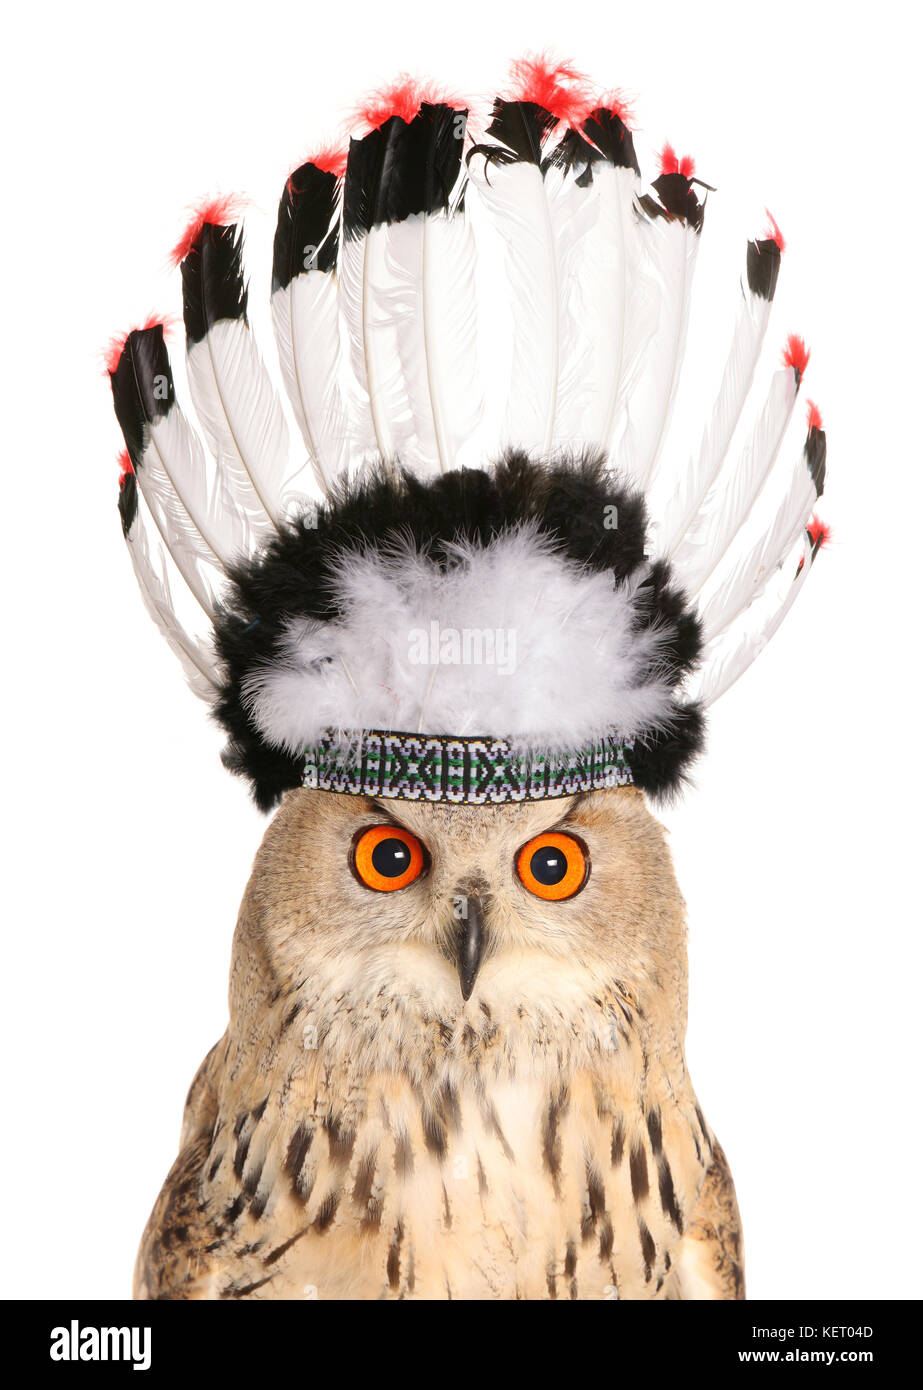 owl wearing red indian chief head feathers - Stock Image